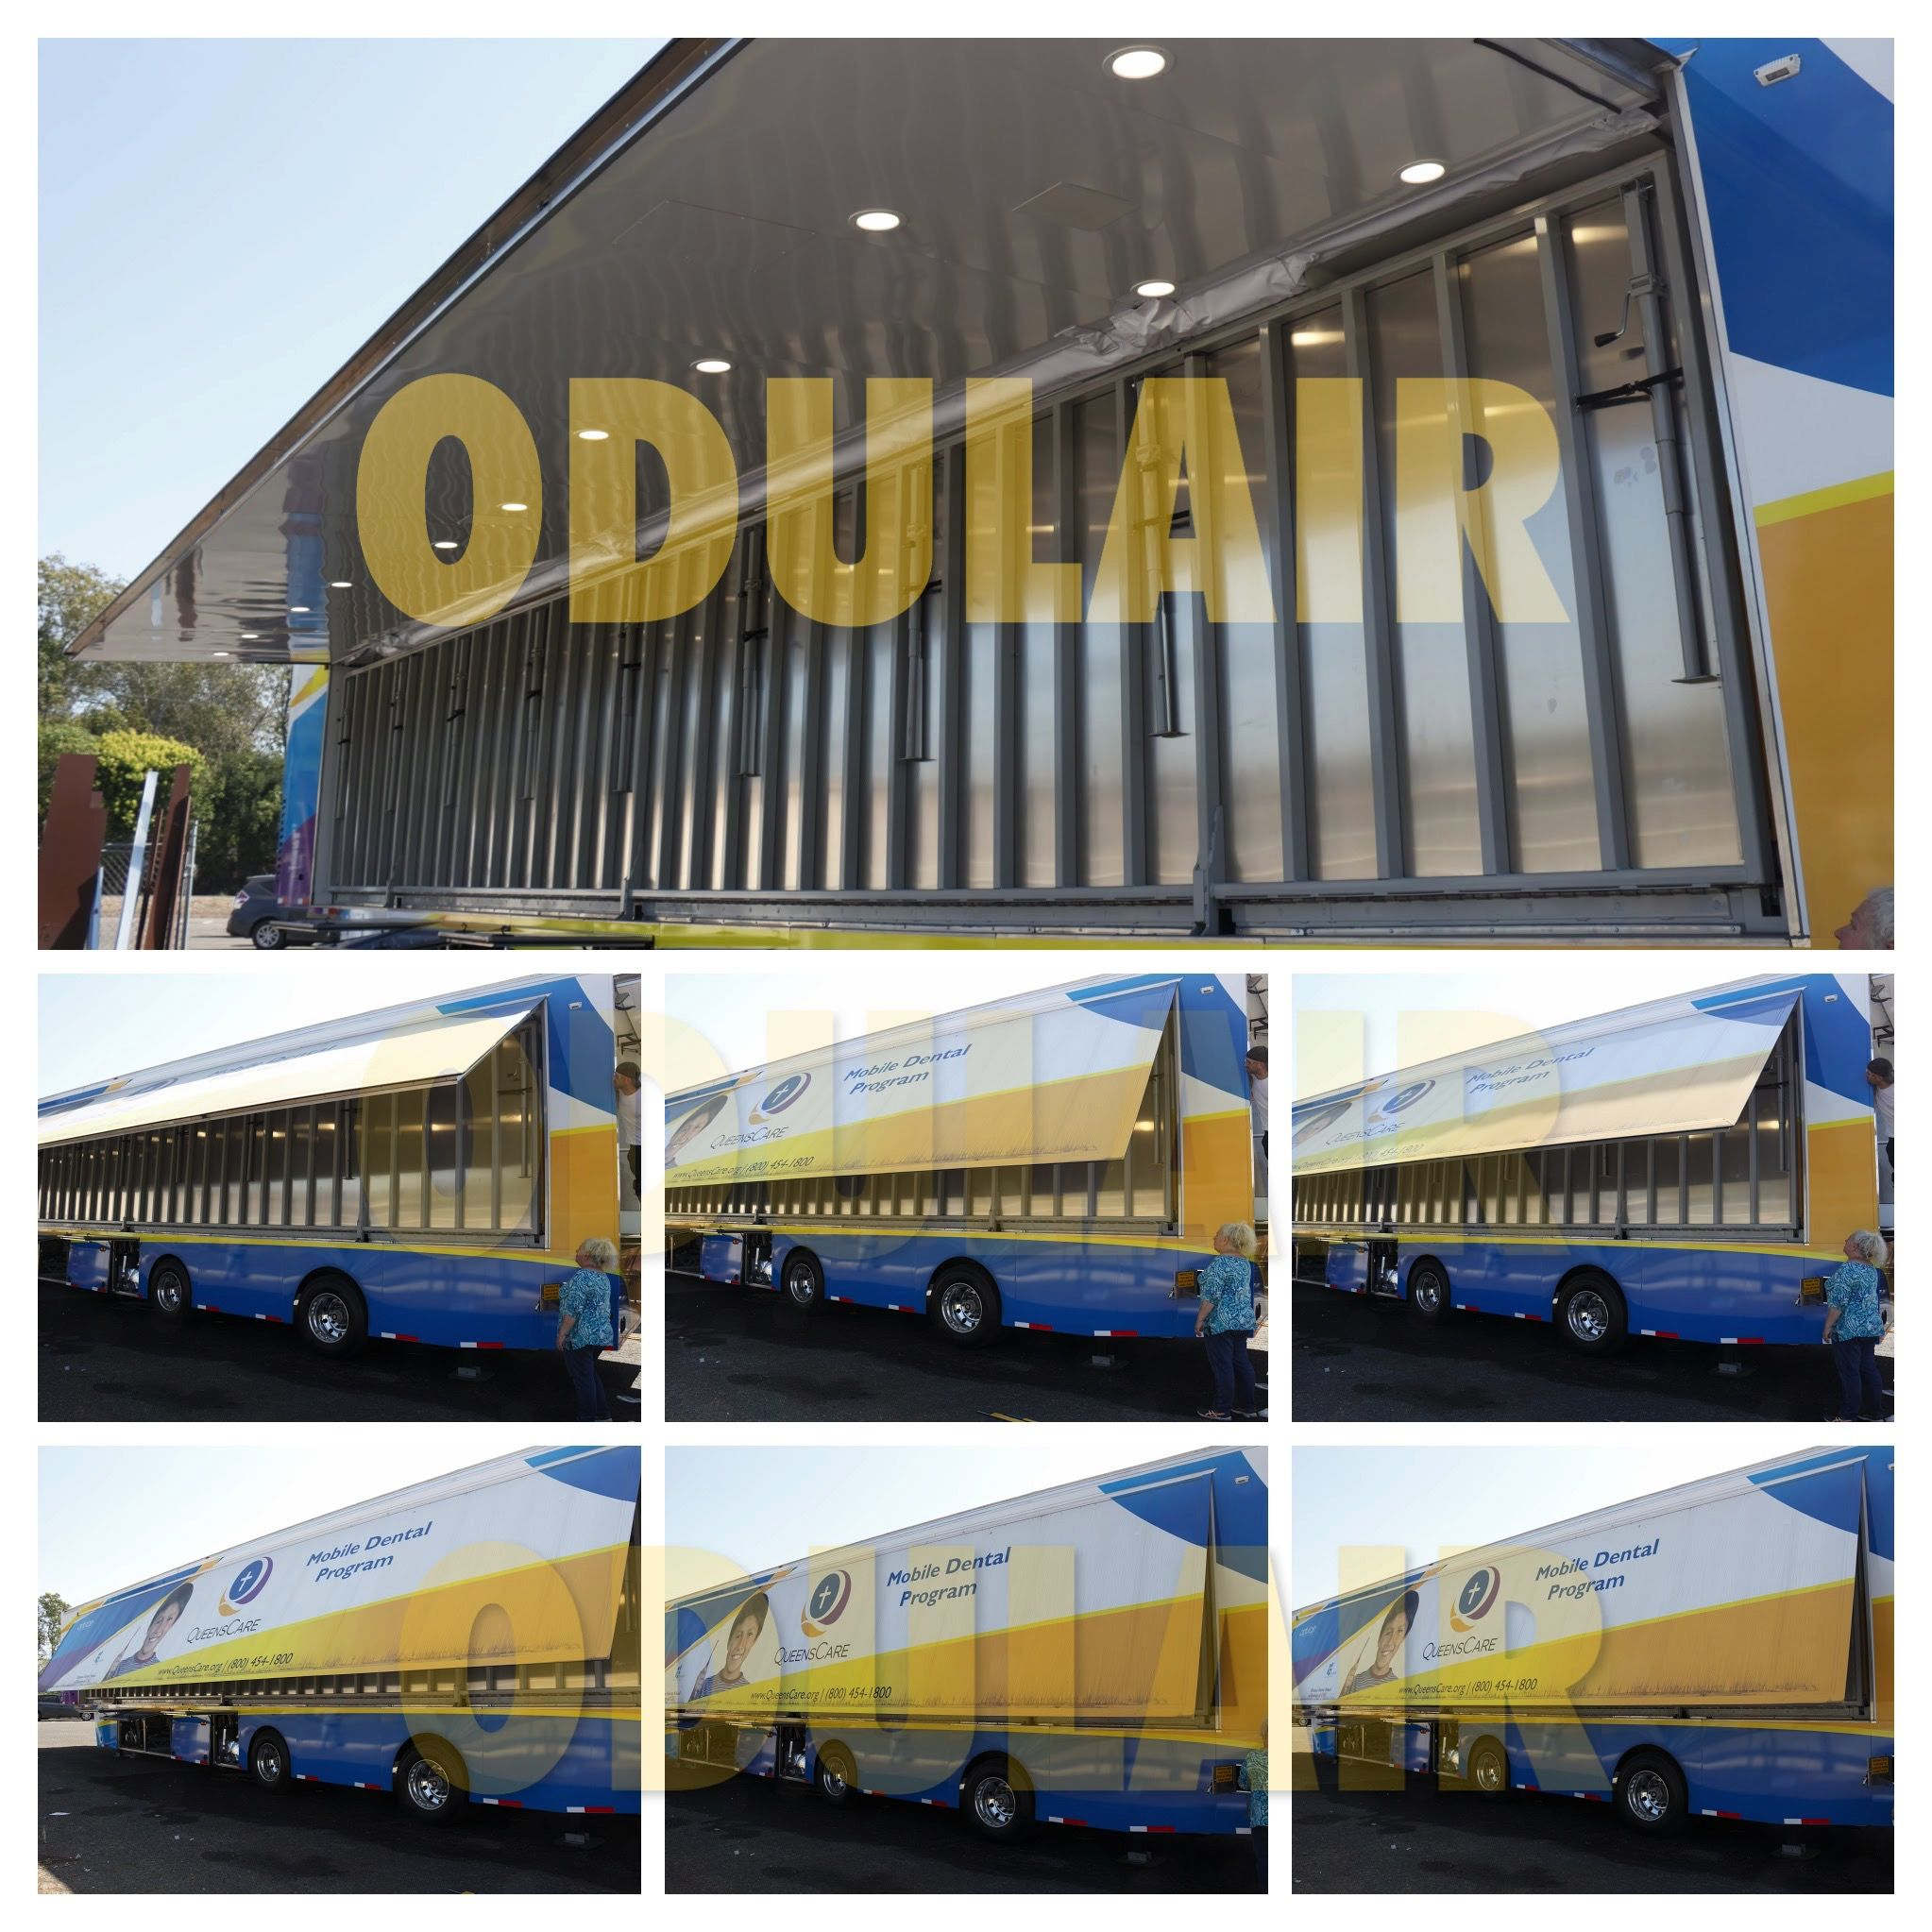 Pin by Odulair on Mobile Clinics by Odulair | Clinic design